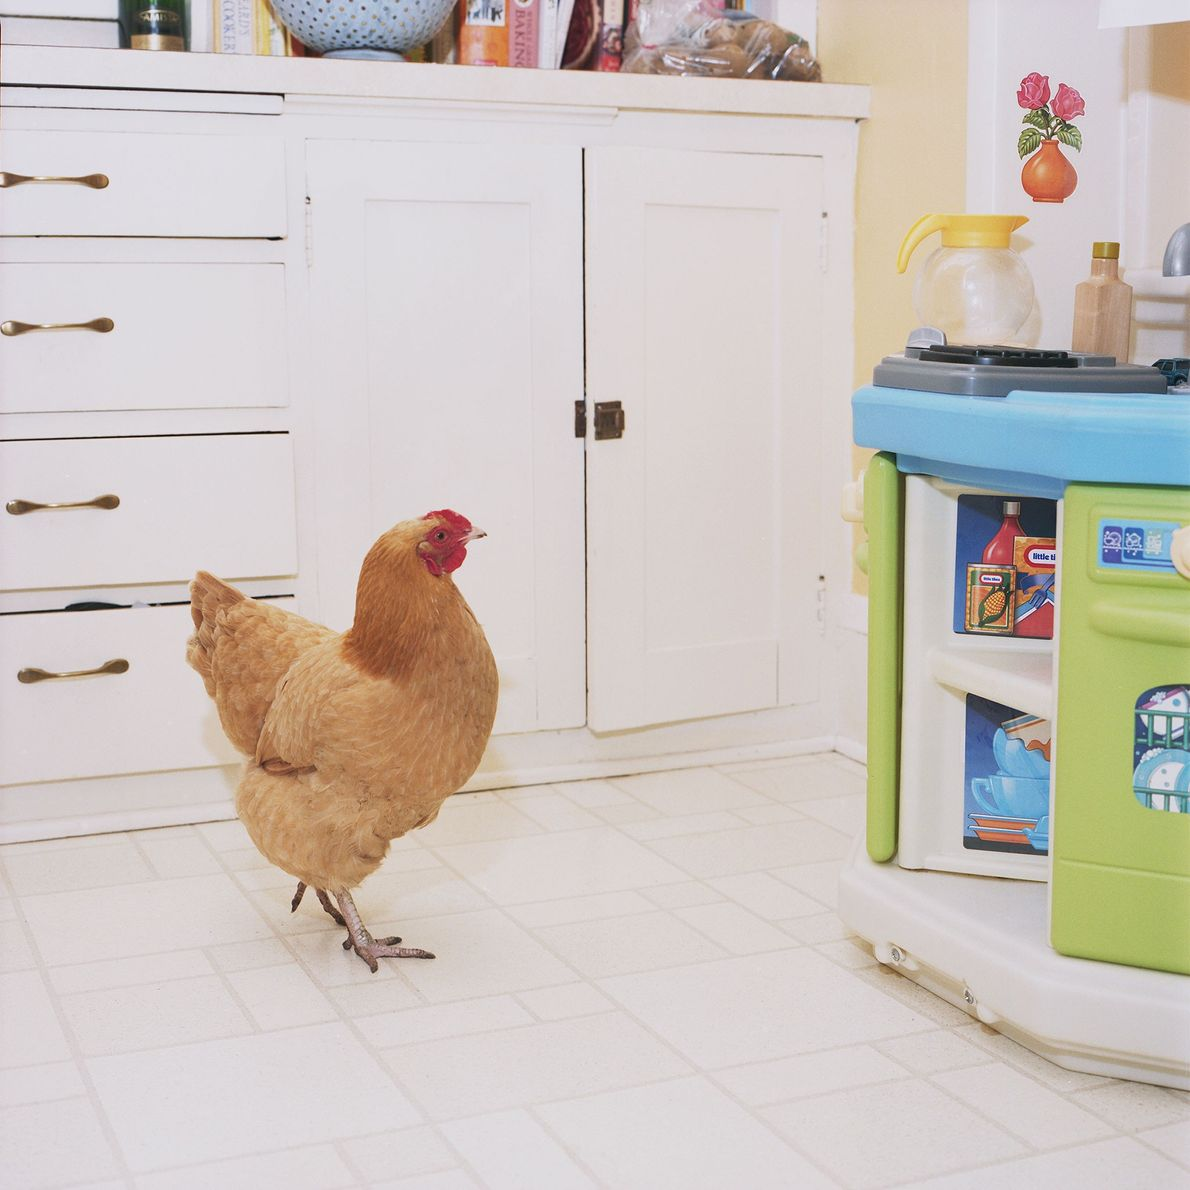 """Hickety (seen roaming her kitchen) was kept partly for eggs, """"but her owners showed great affection ..."""